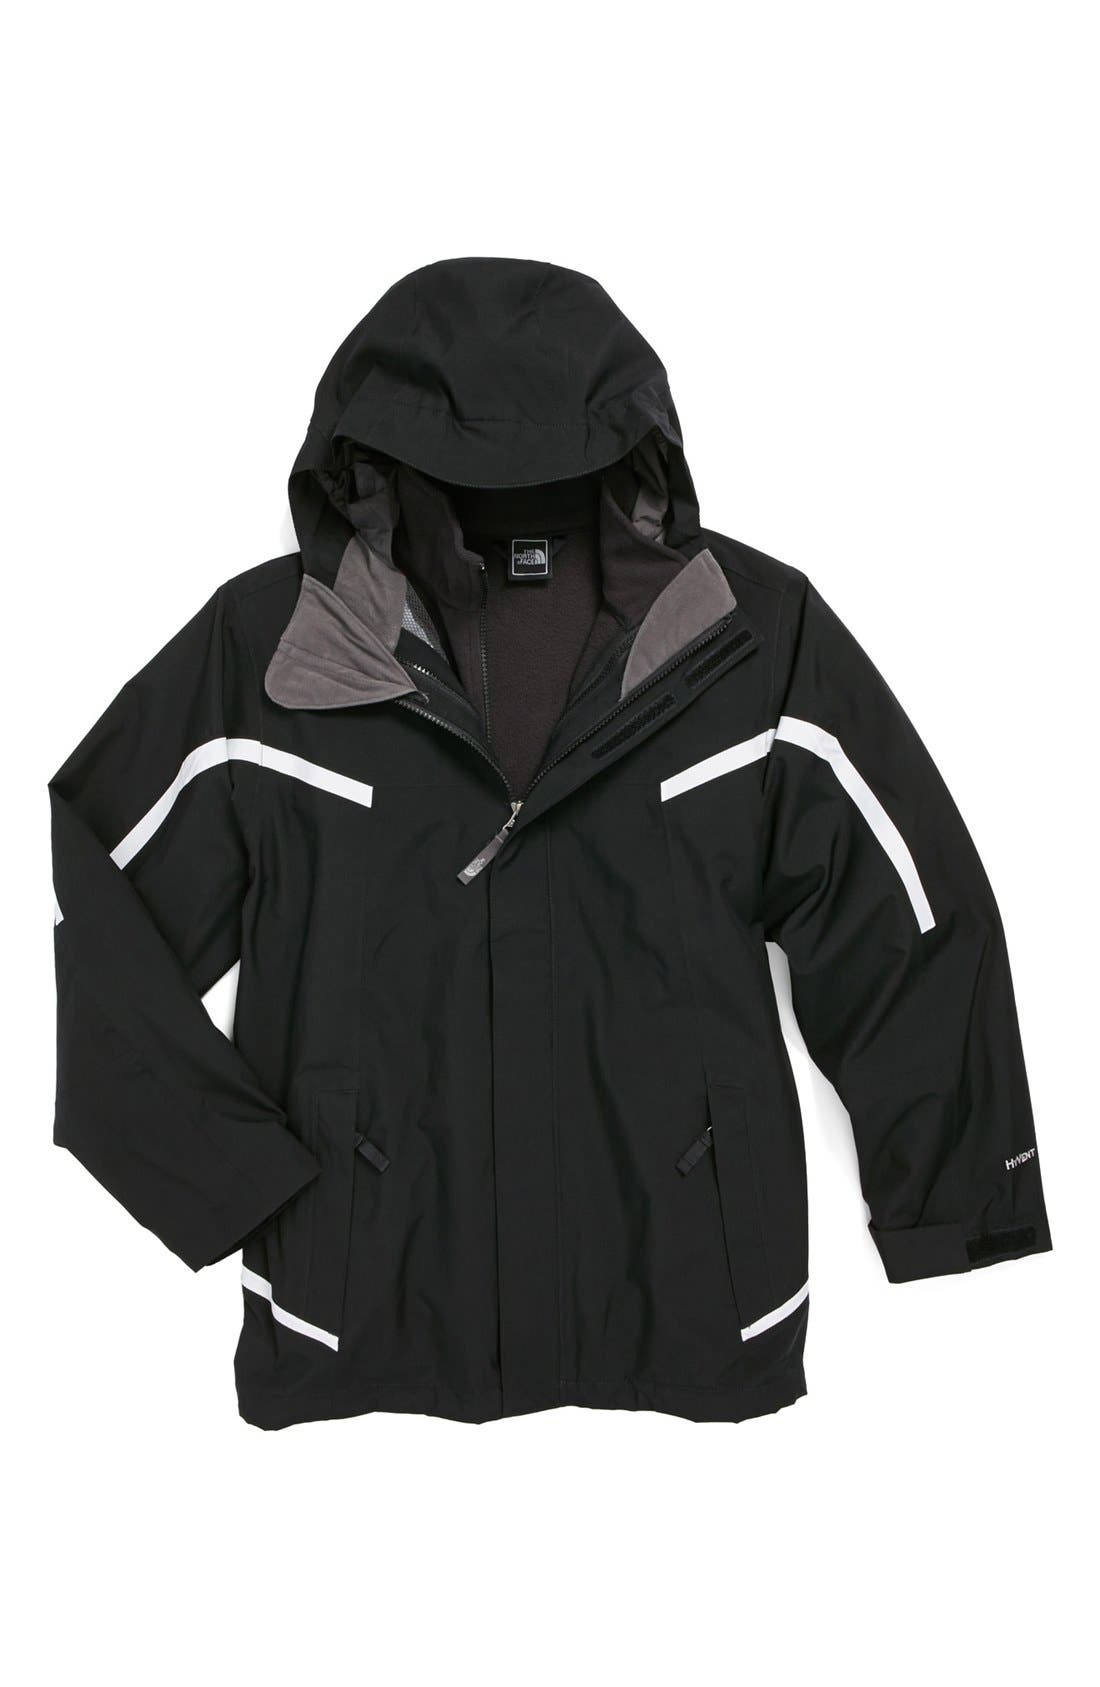 Alternate Image 1 Selected - The North Face 'Nimbostratus' TriClimate® Jacket (Little Boys)